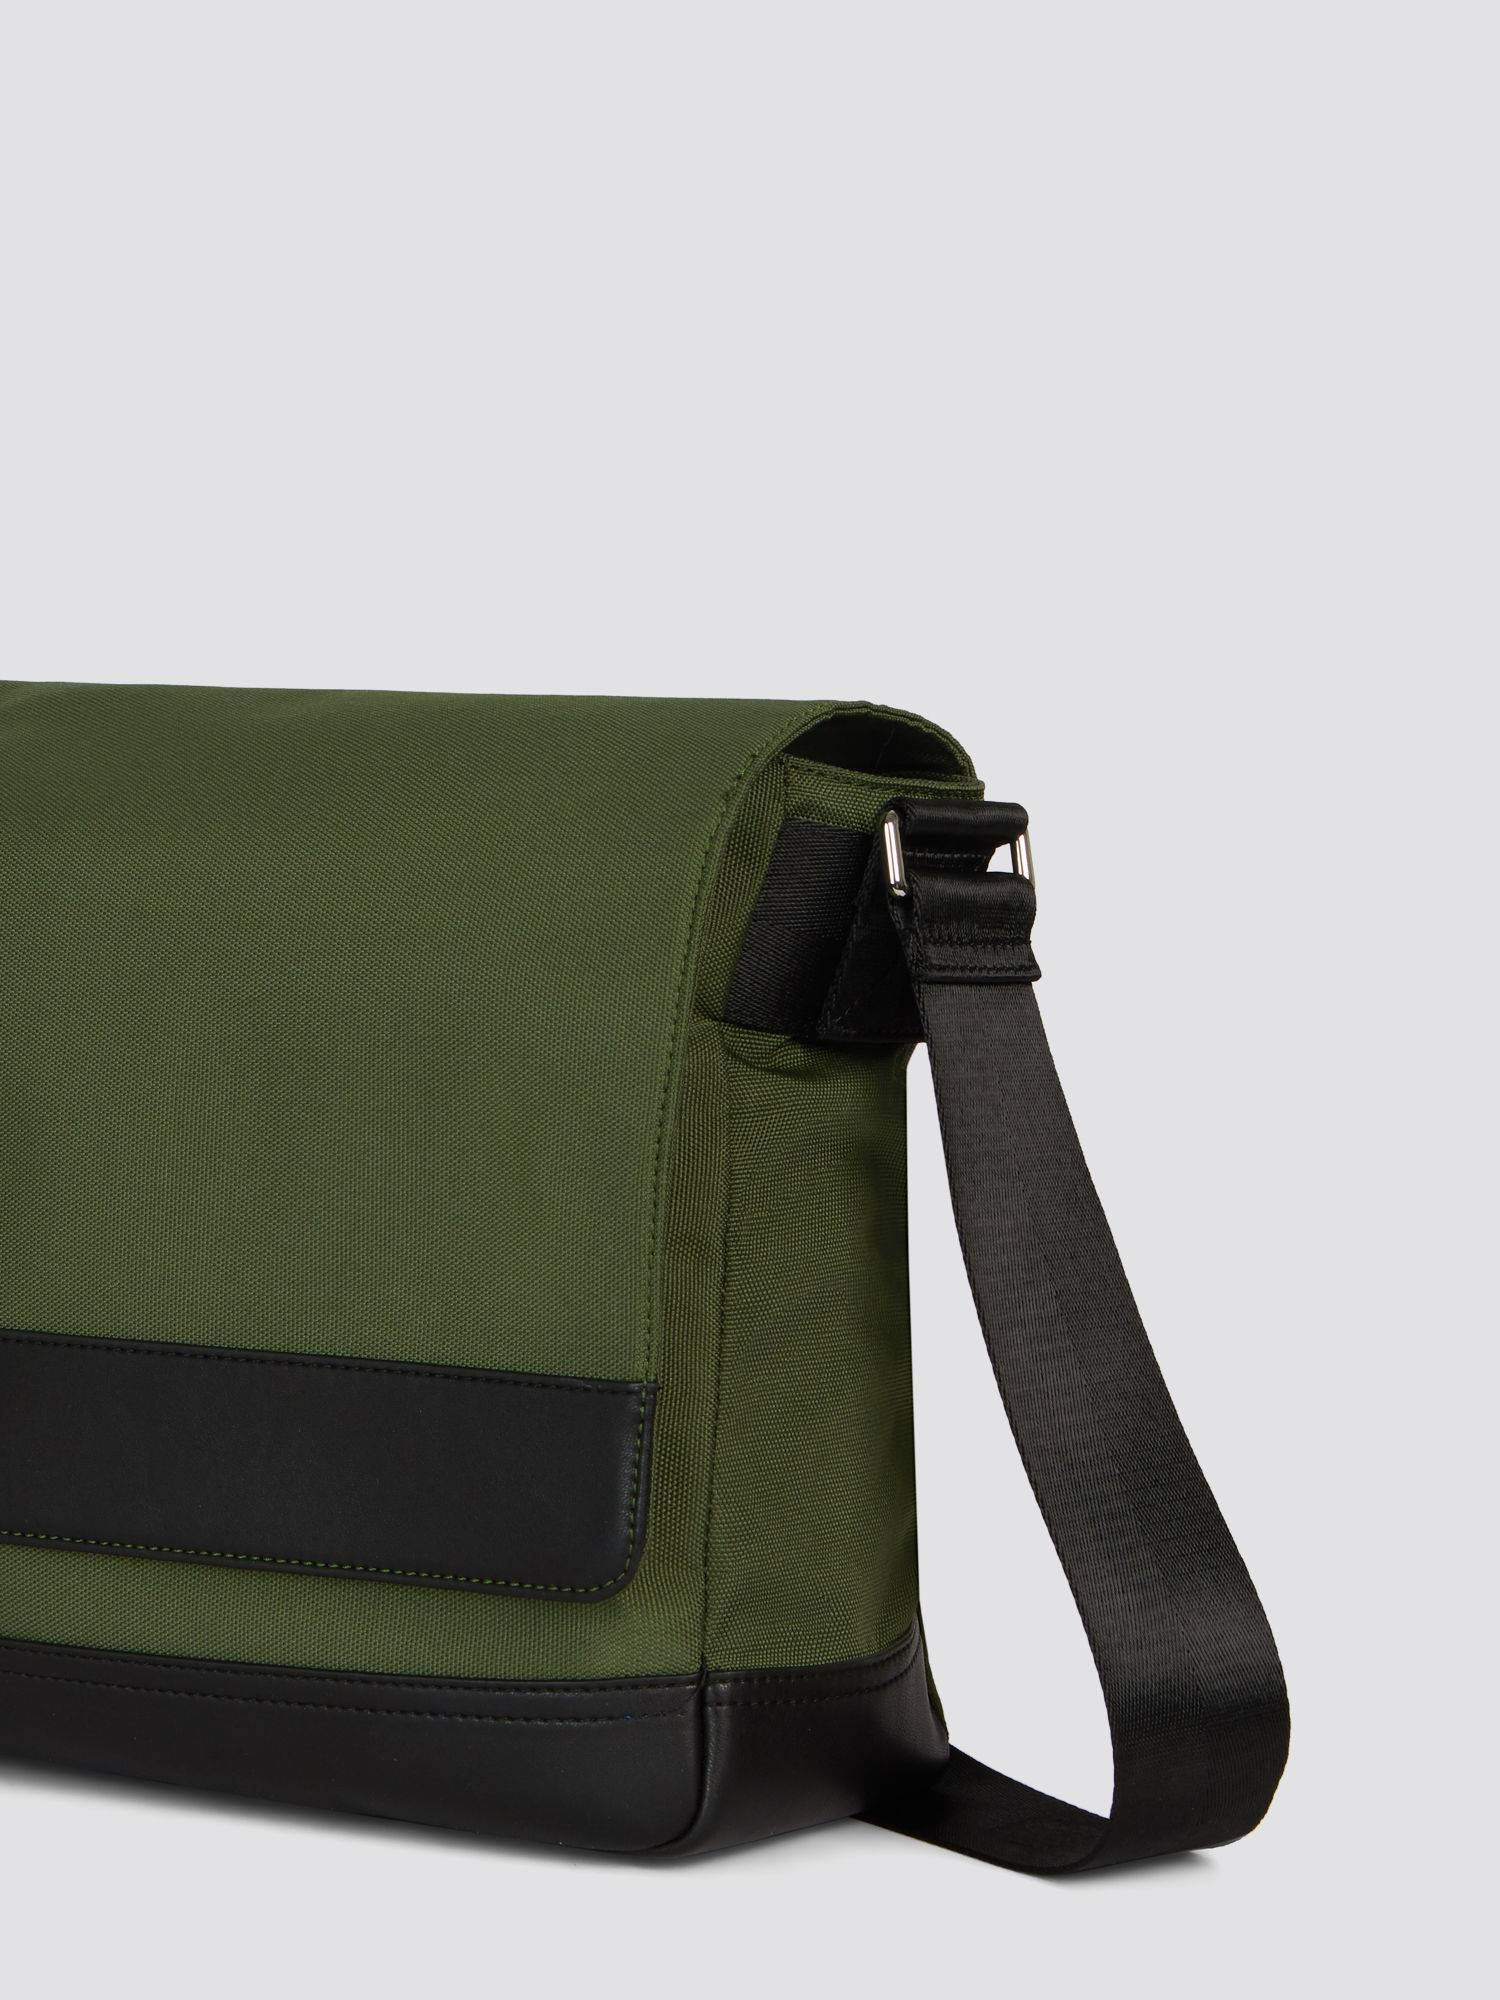 Borsa Ticinese Messanger large in cordura e similpelle